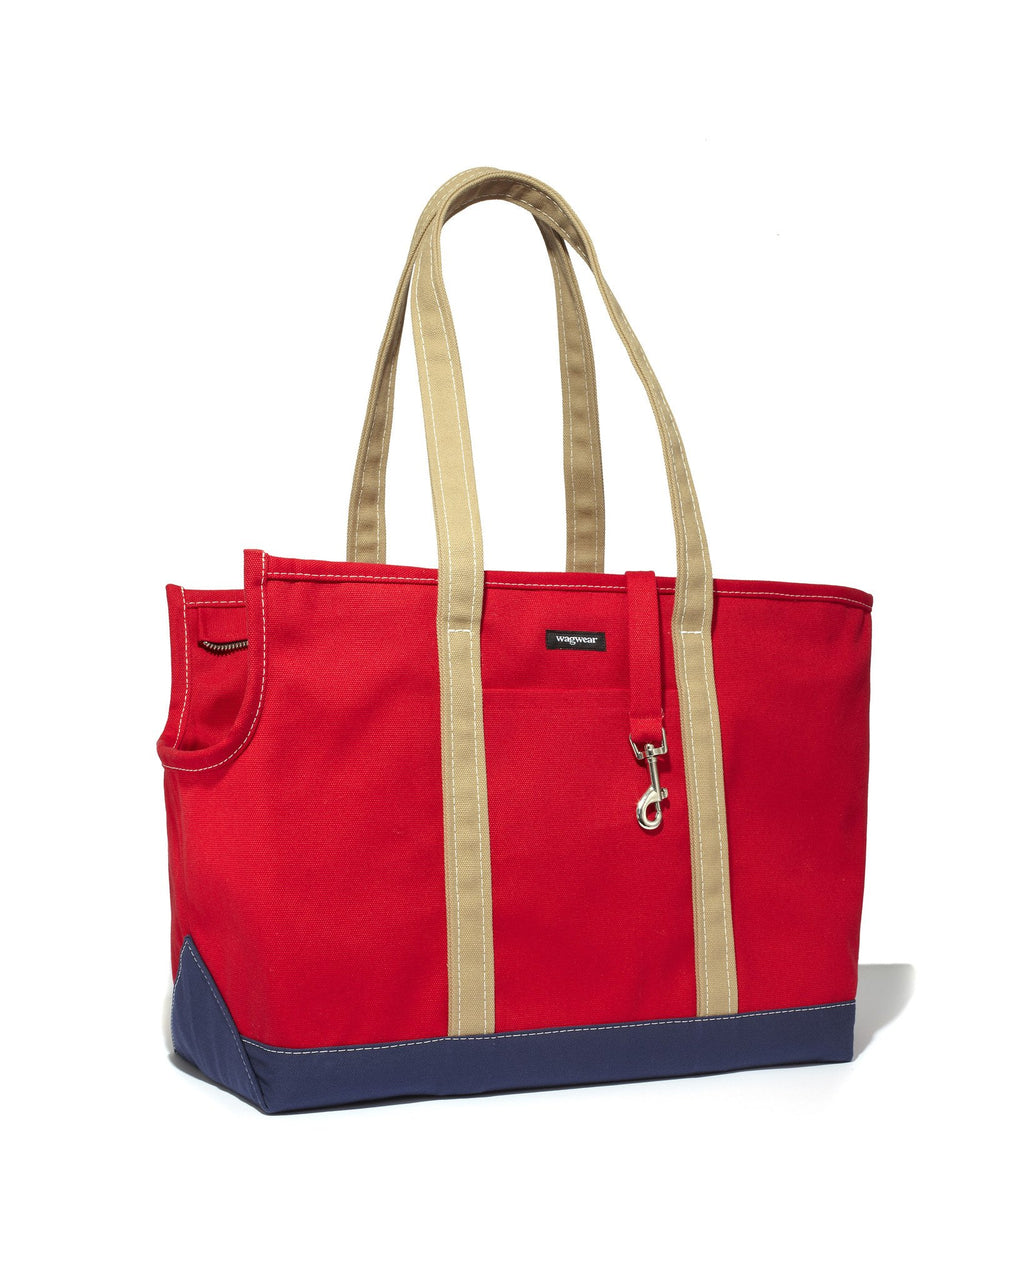 Tri-Color Boat Canvas Carrier - Red/Navy/Tan